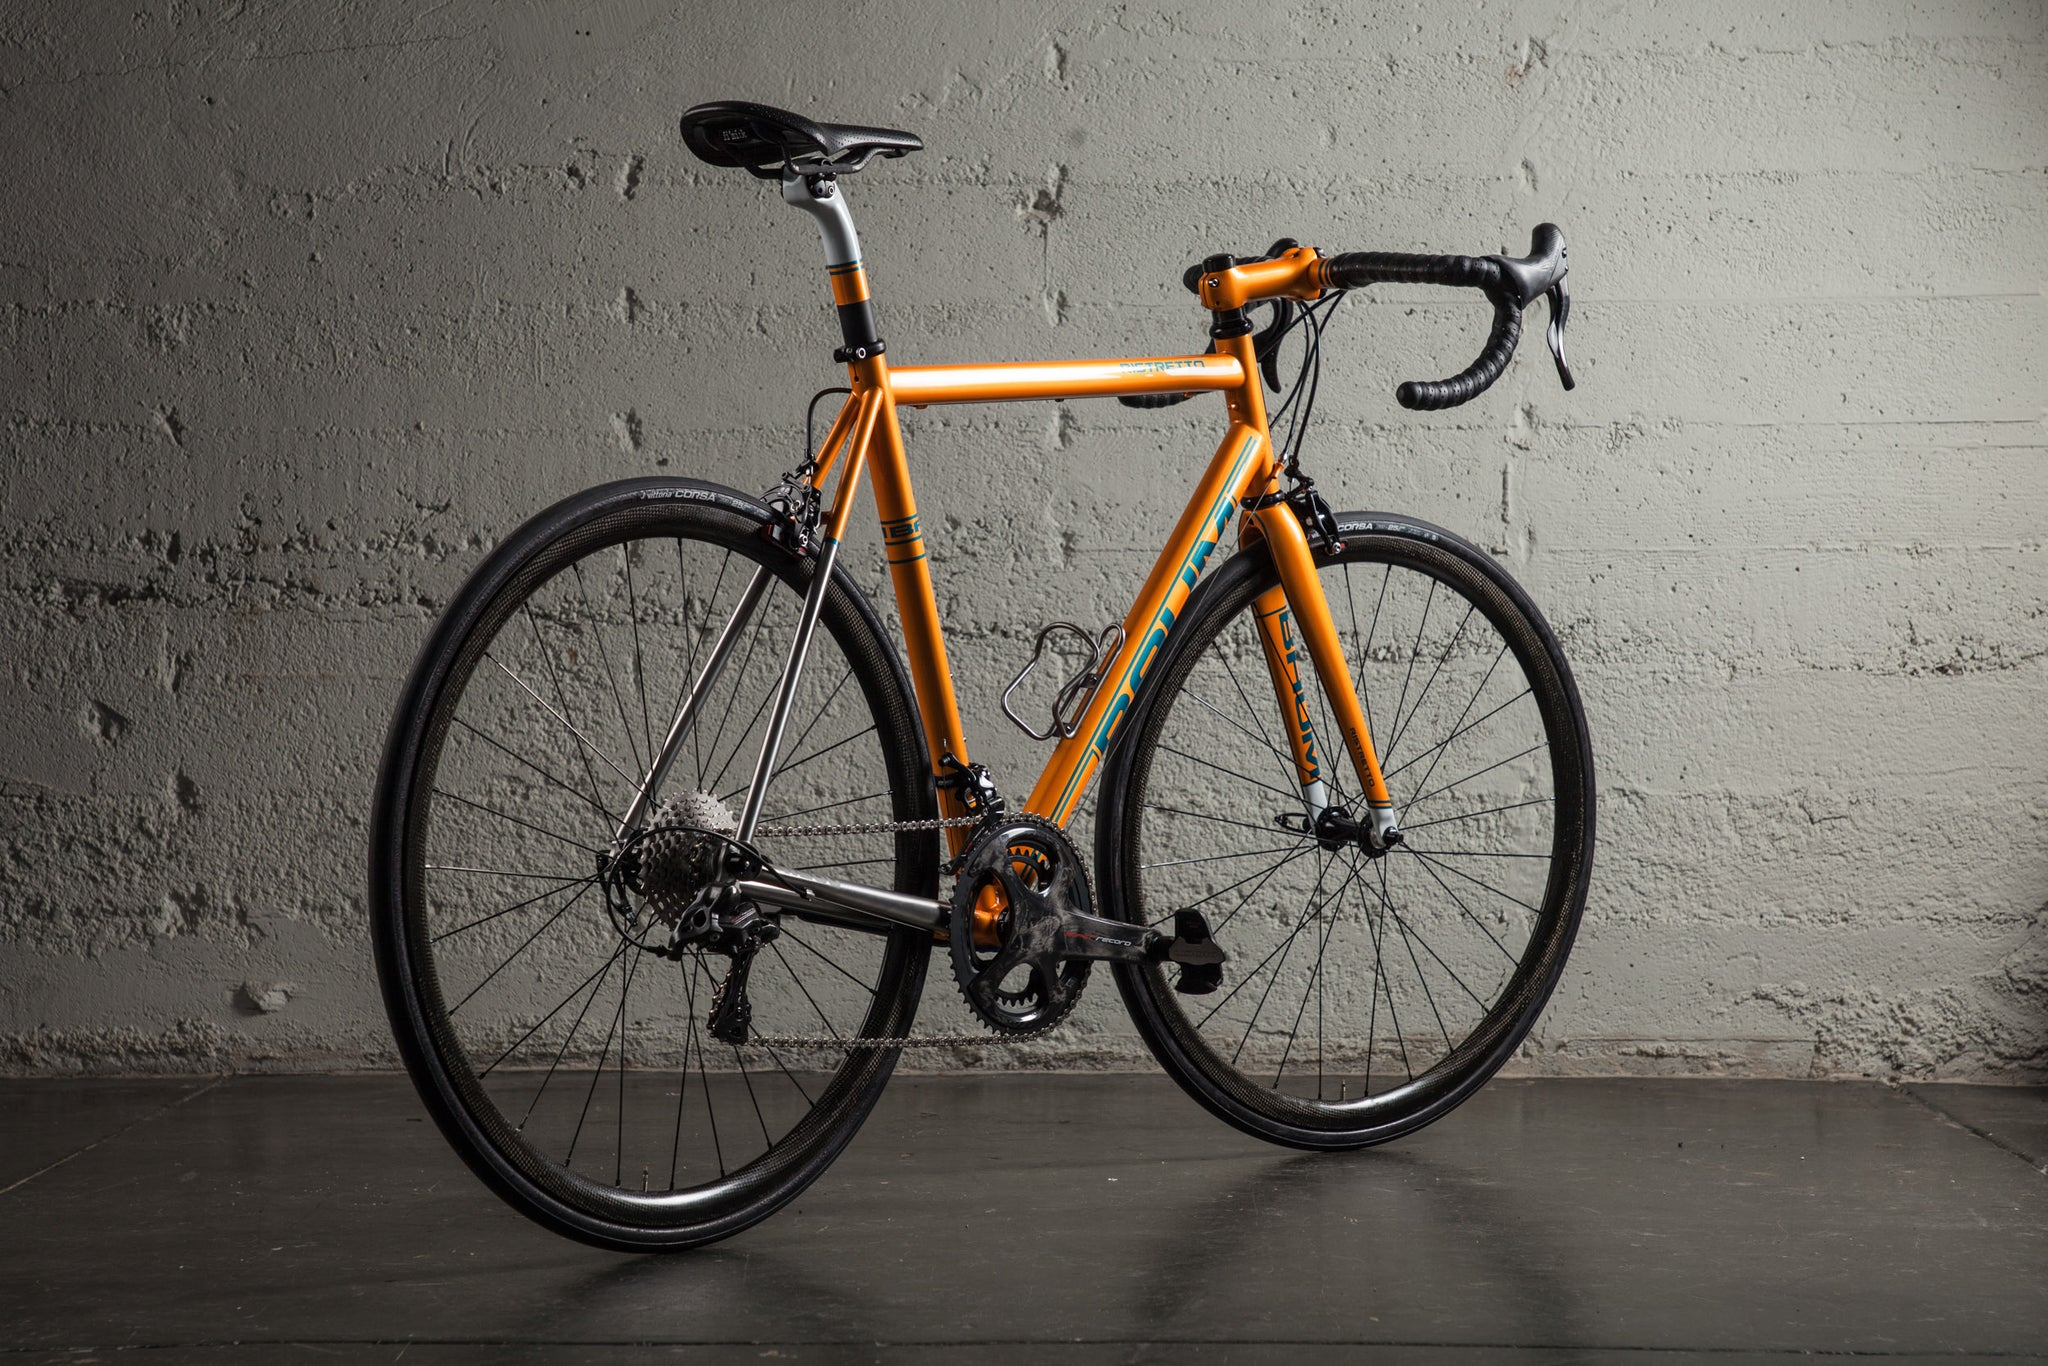 baum ristretto orange super record JC rear view